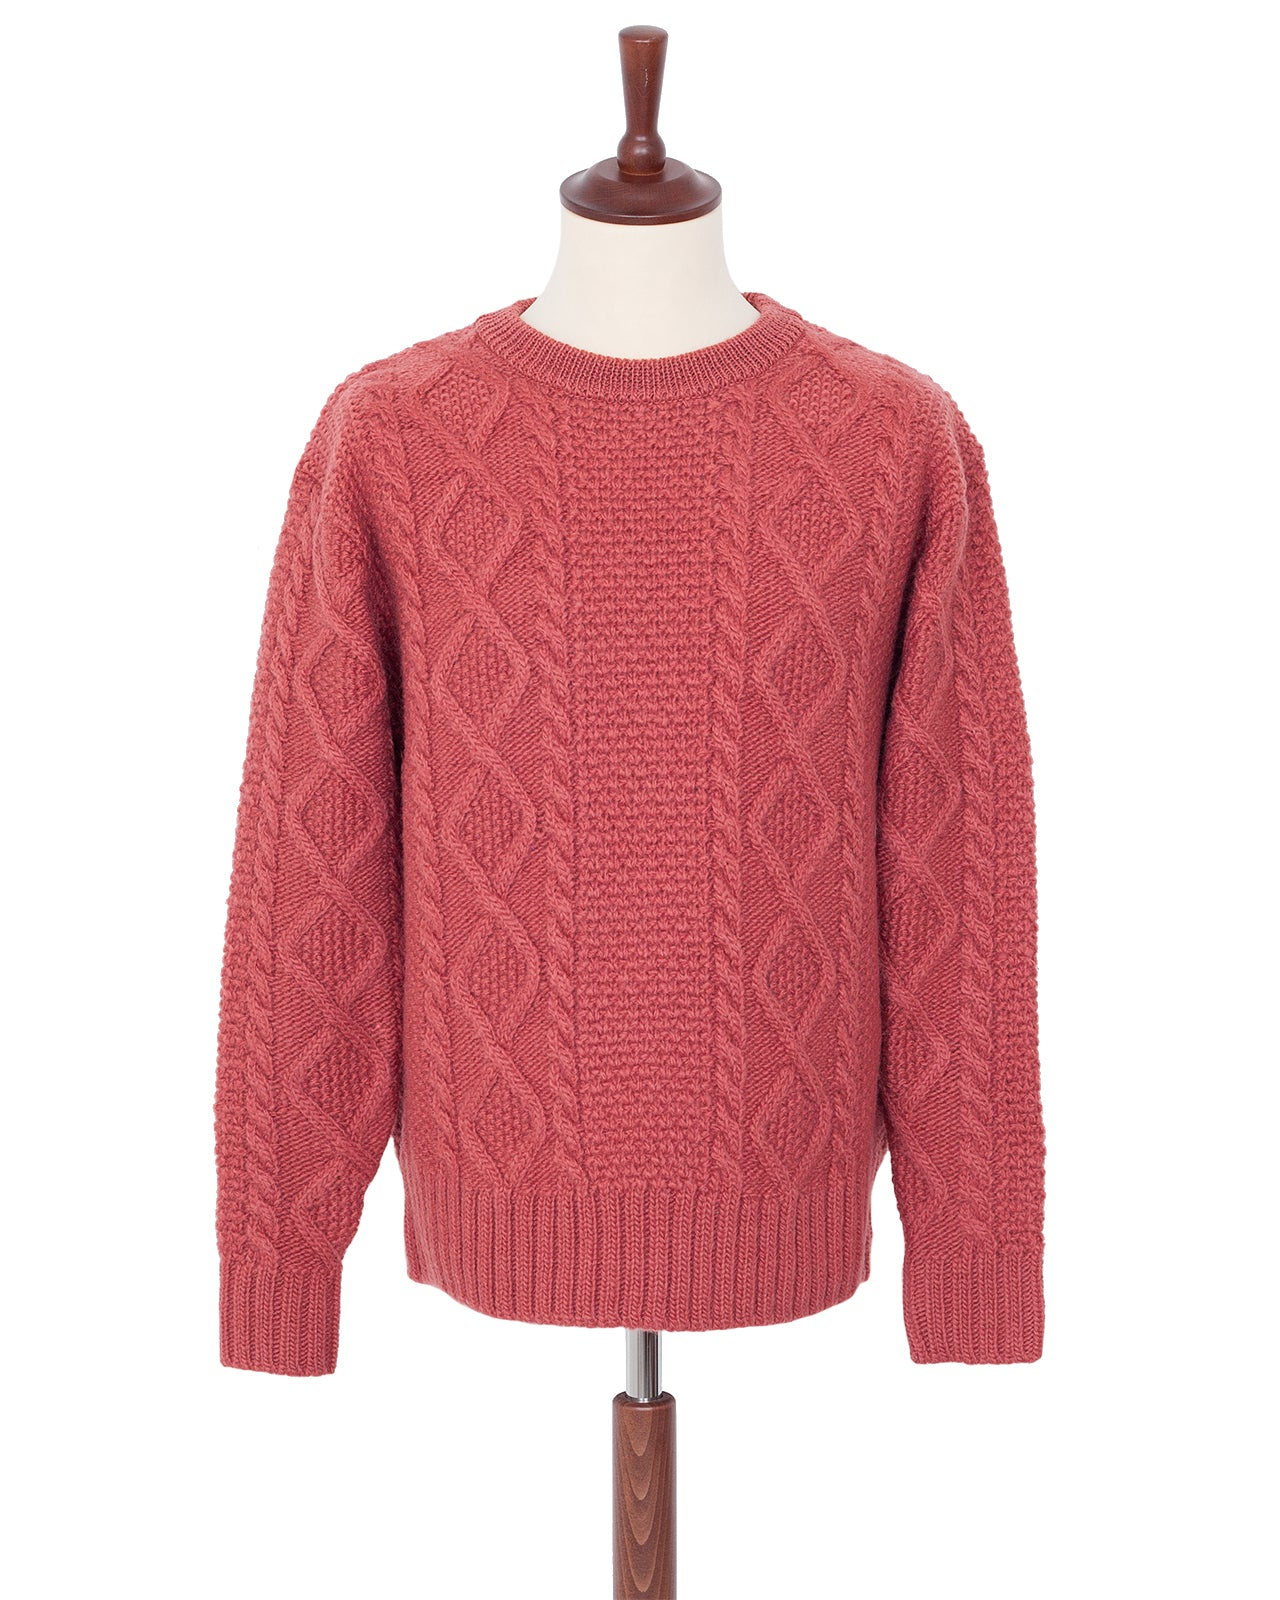 By Glad Hand, Islands, Wool Crew Neck Sweater, Pink